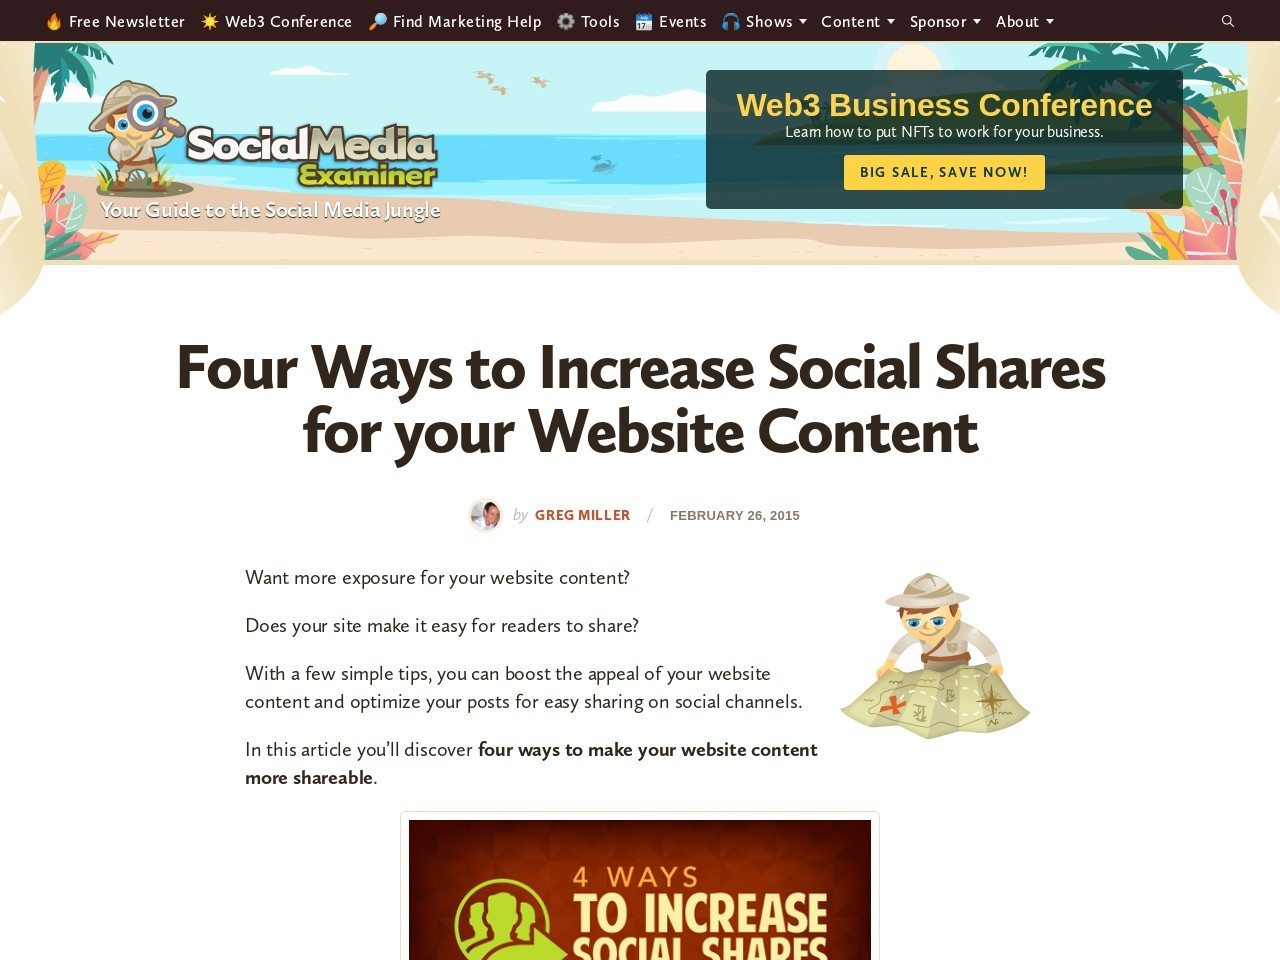 Four Ways to Increase Social Shares for your Website Content